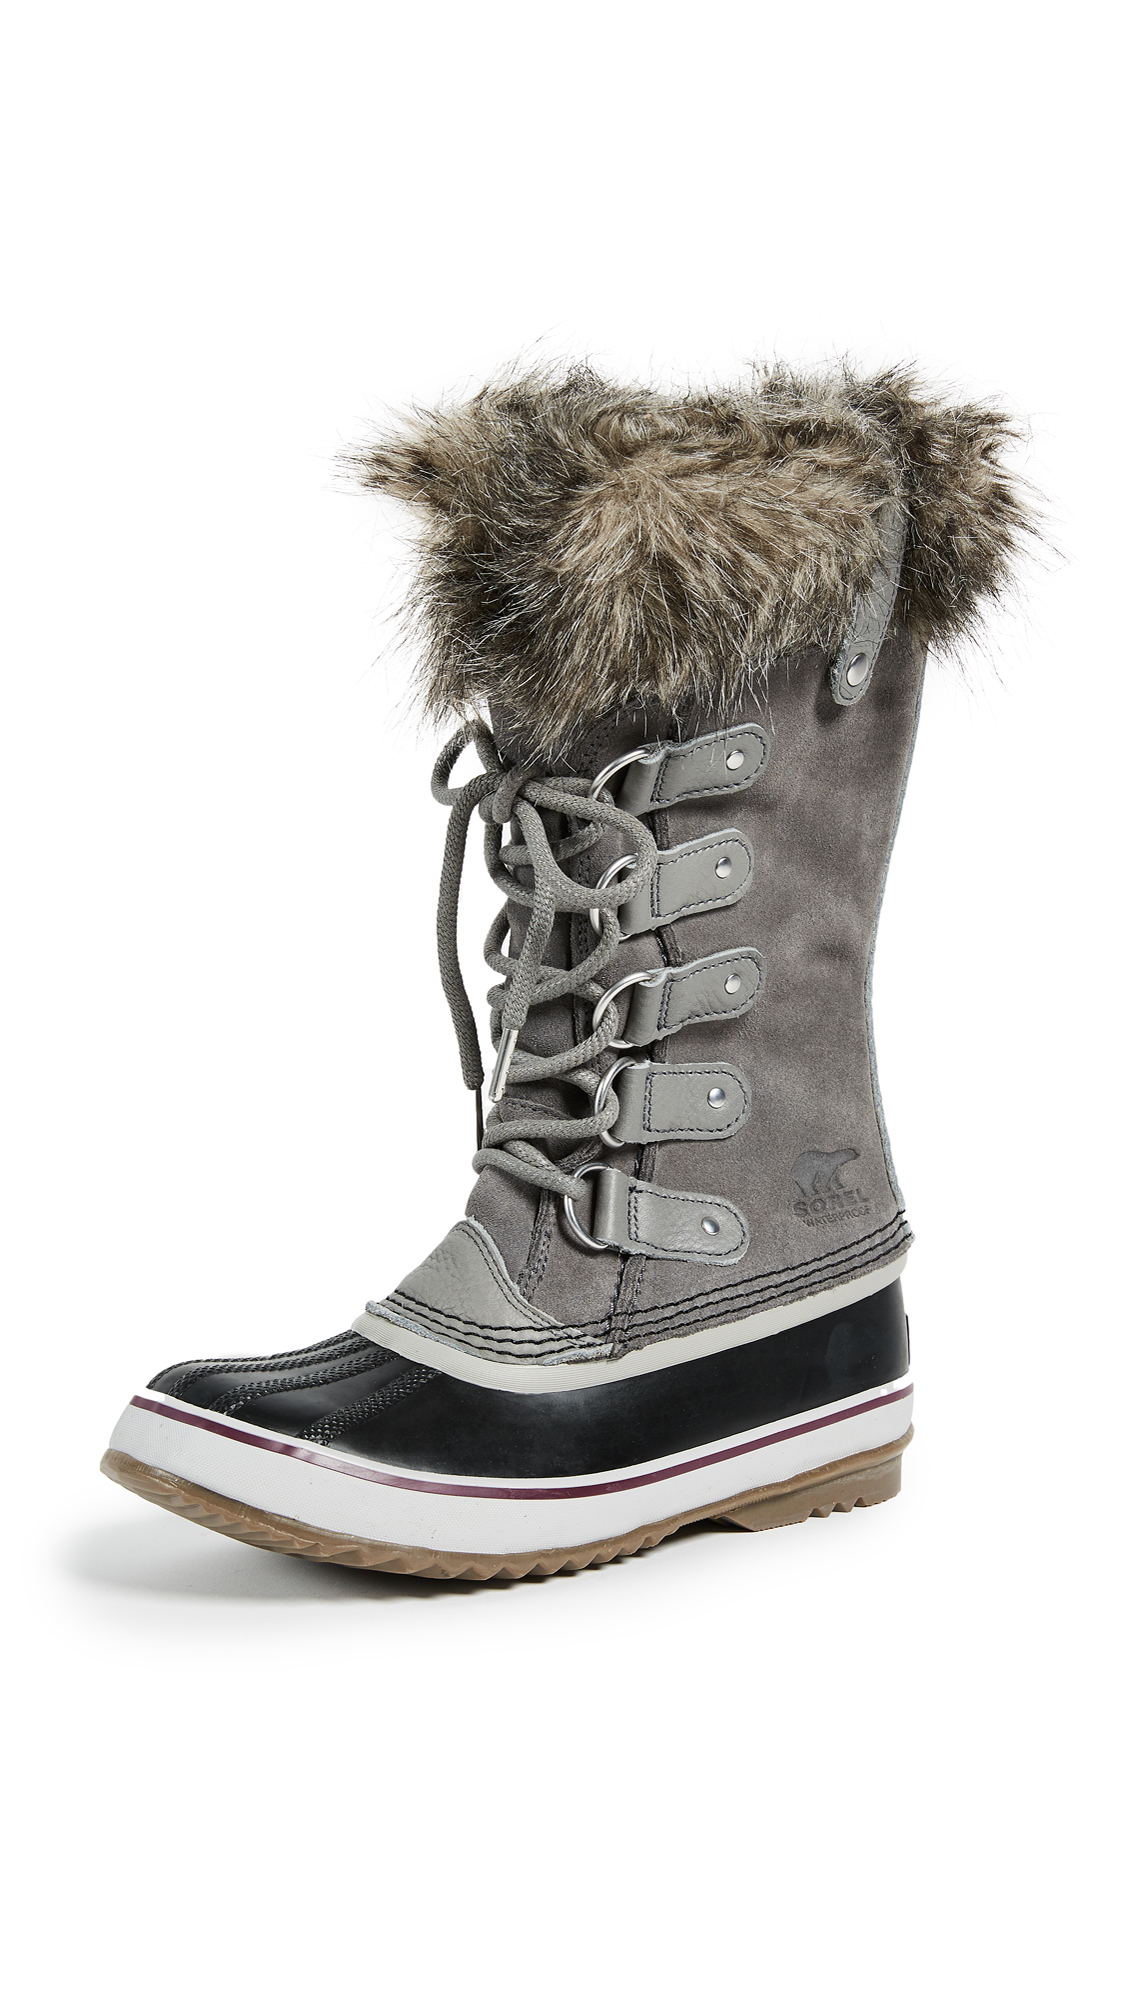 Sorel Joan of Arctic Boots - Quarry